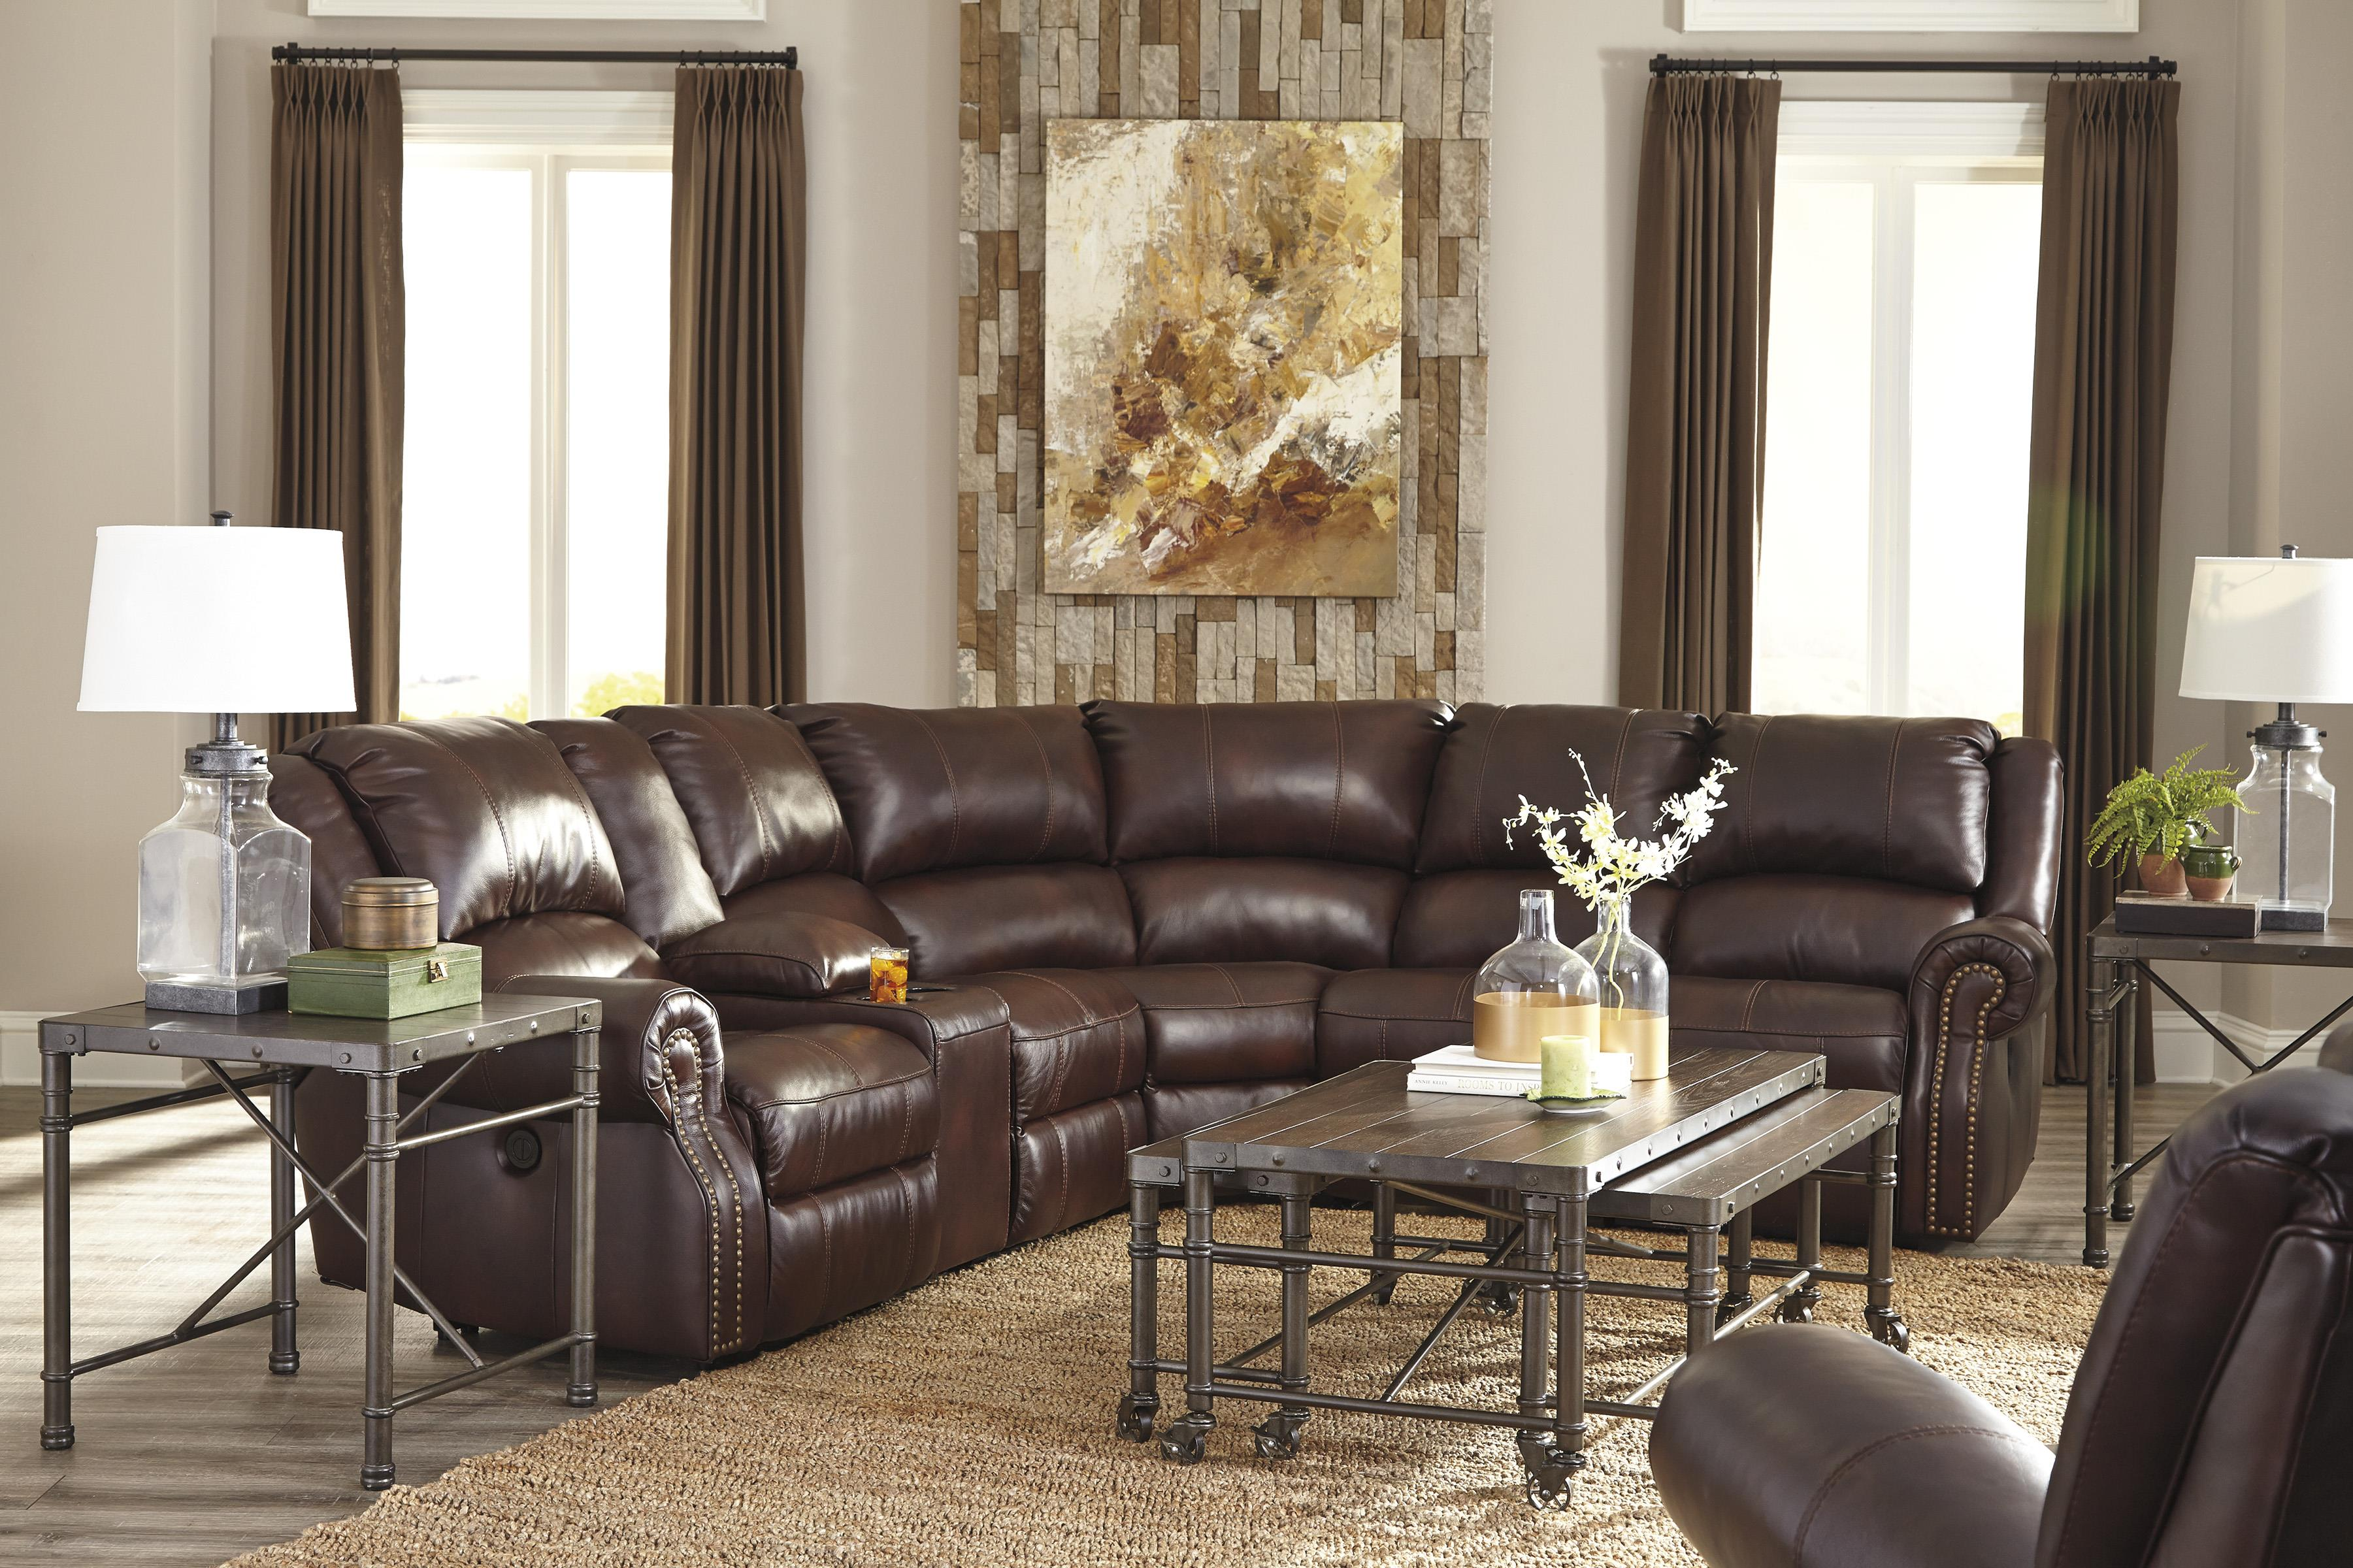 Signature Design by Ashley Collinsville Reclining Living Room Group - Item Number: U72100 Living Room Group 4